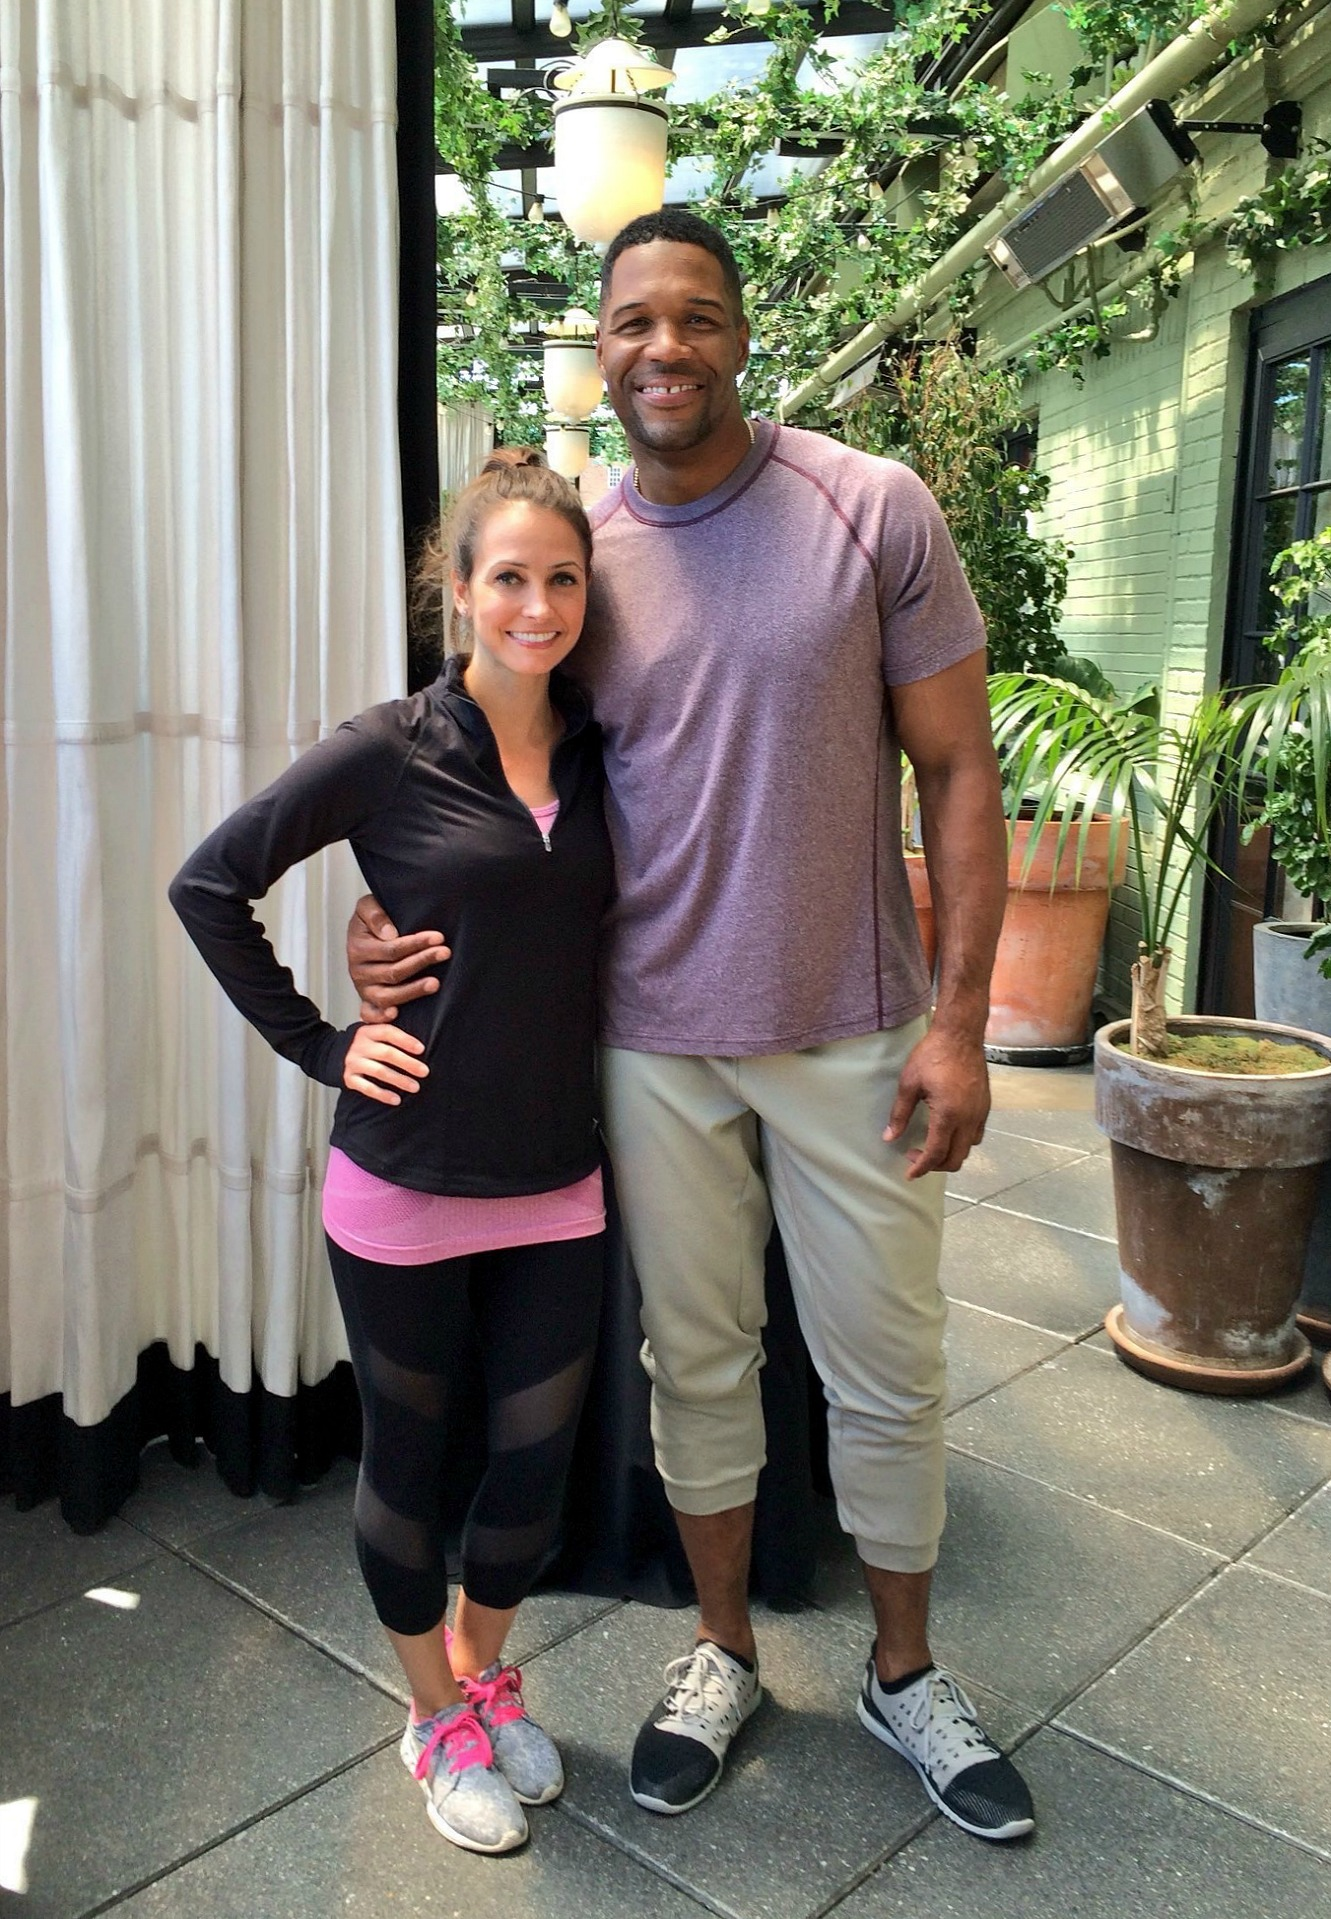 Heather Life In Leggings and Health and Fitness Tips with Michael Strahan